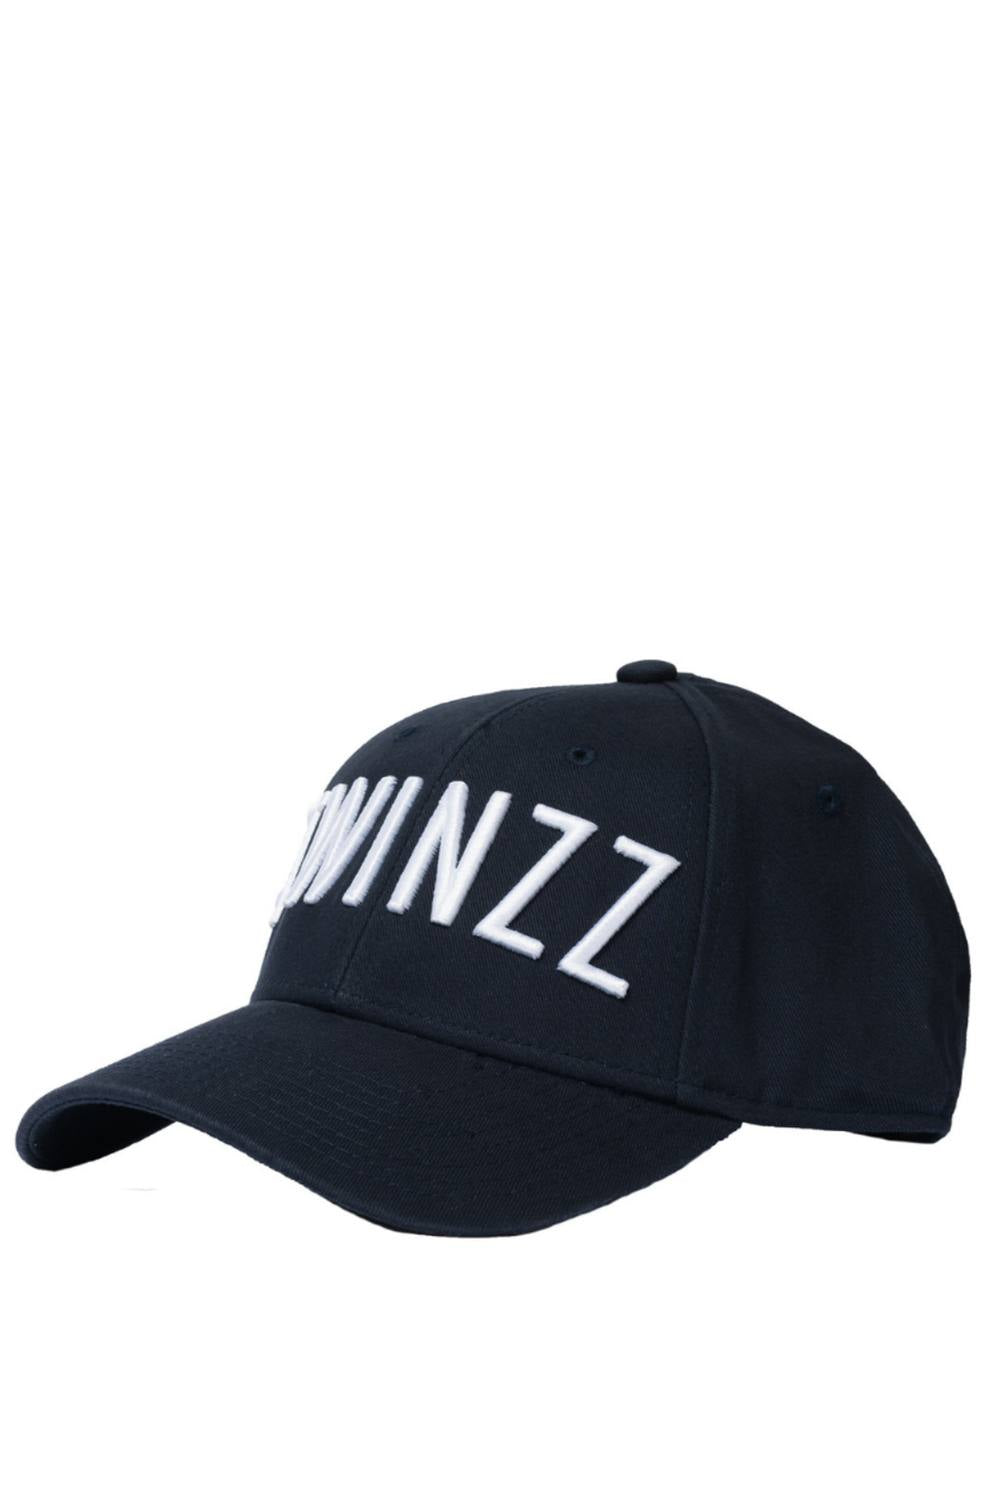 bb15145e7 Twinzz 3D Harbour Baseball Cap - Navy/White – URBAN APPAREL